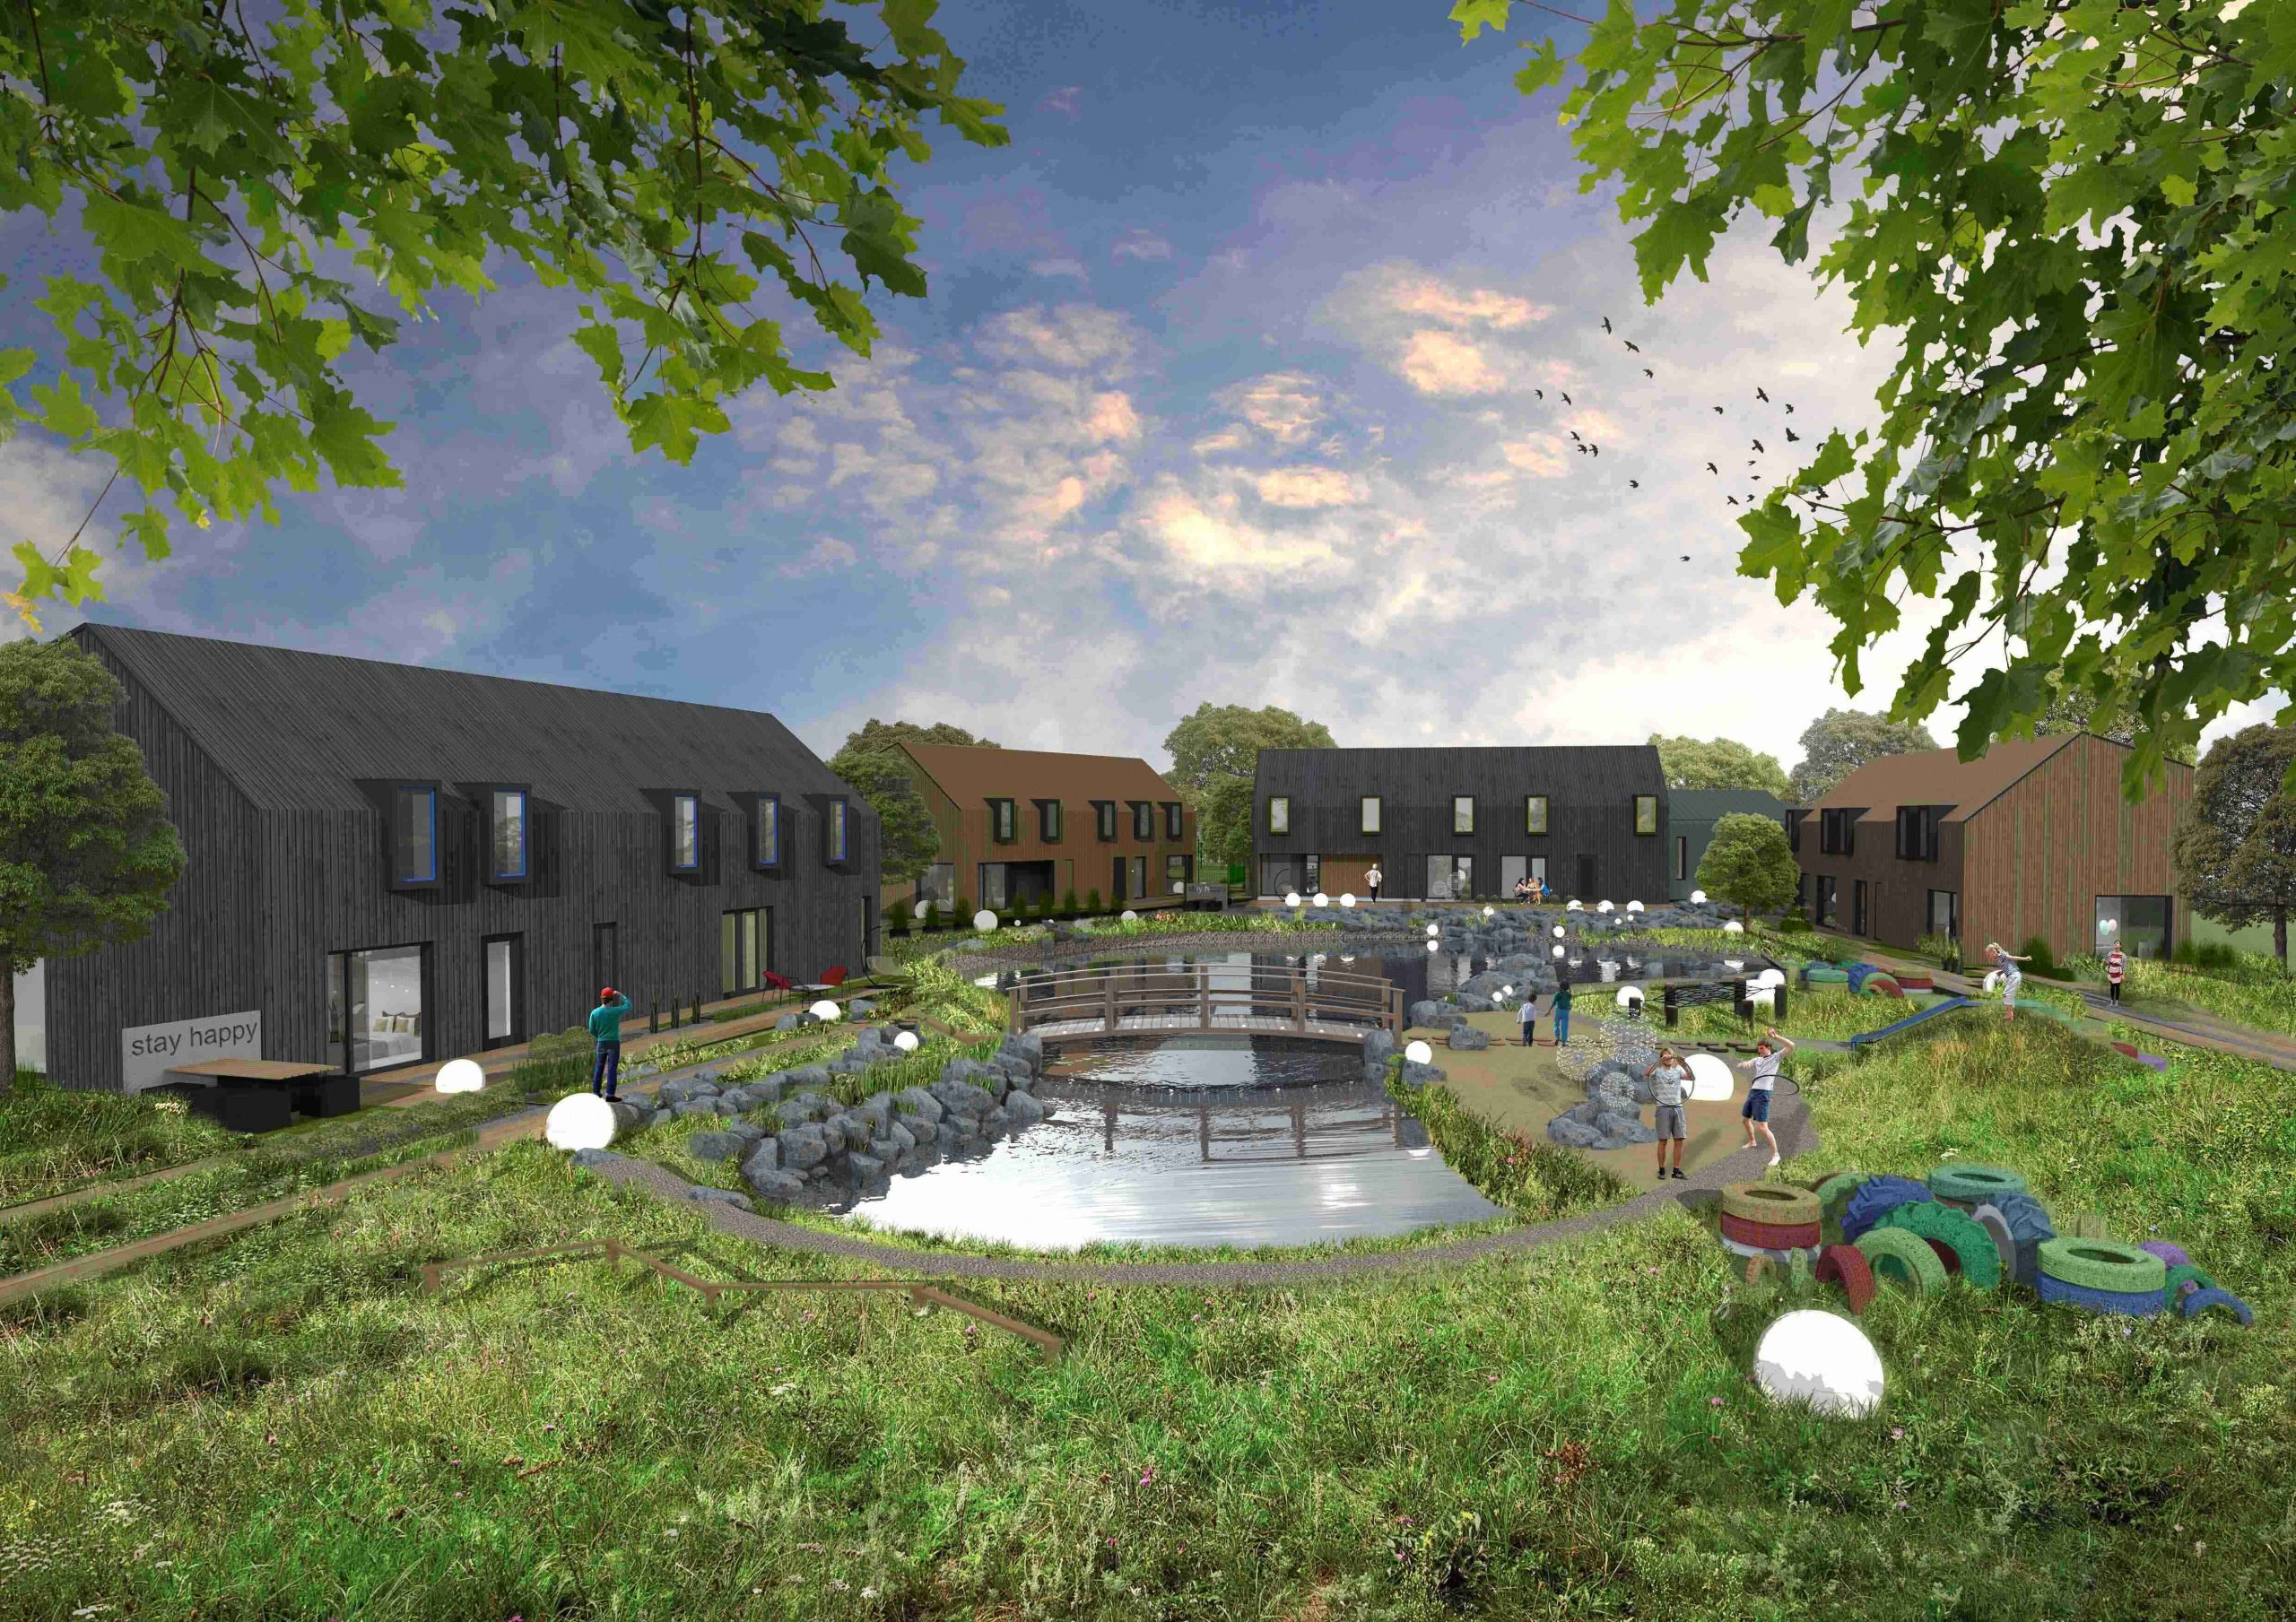 STEPNELL STARTS ON SITE AT SPECIALIST CHILDREN'S CARE HOME